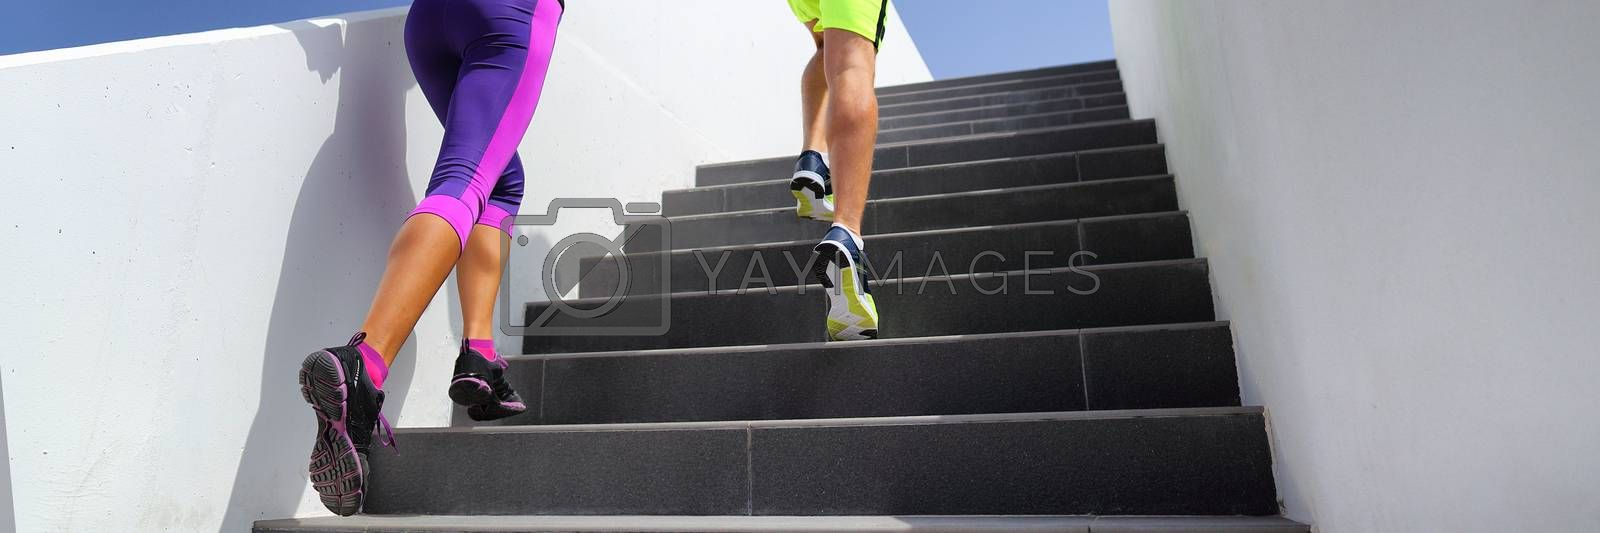 Stairs runners running fitness lifestyle banner. Jogging up staircase training hiit workout. Couple working out legs and cardio. Healthy active sport people exercising in urban city by Maridav